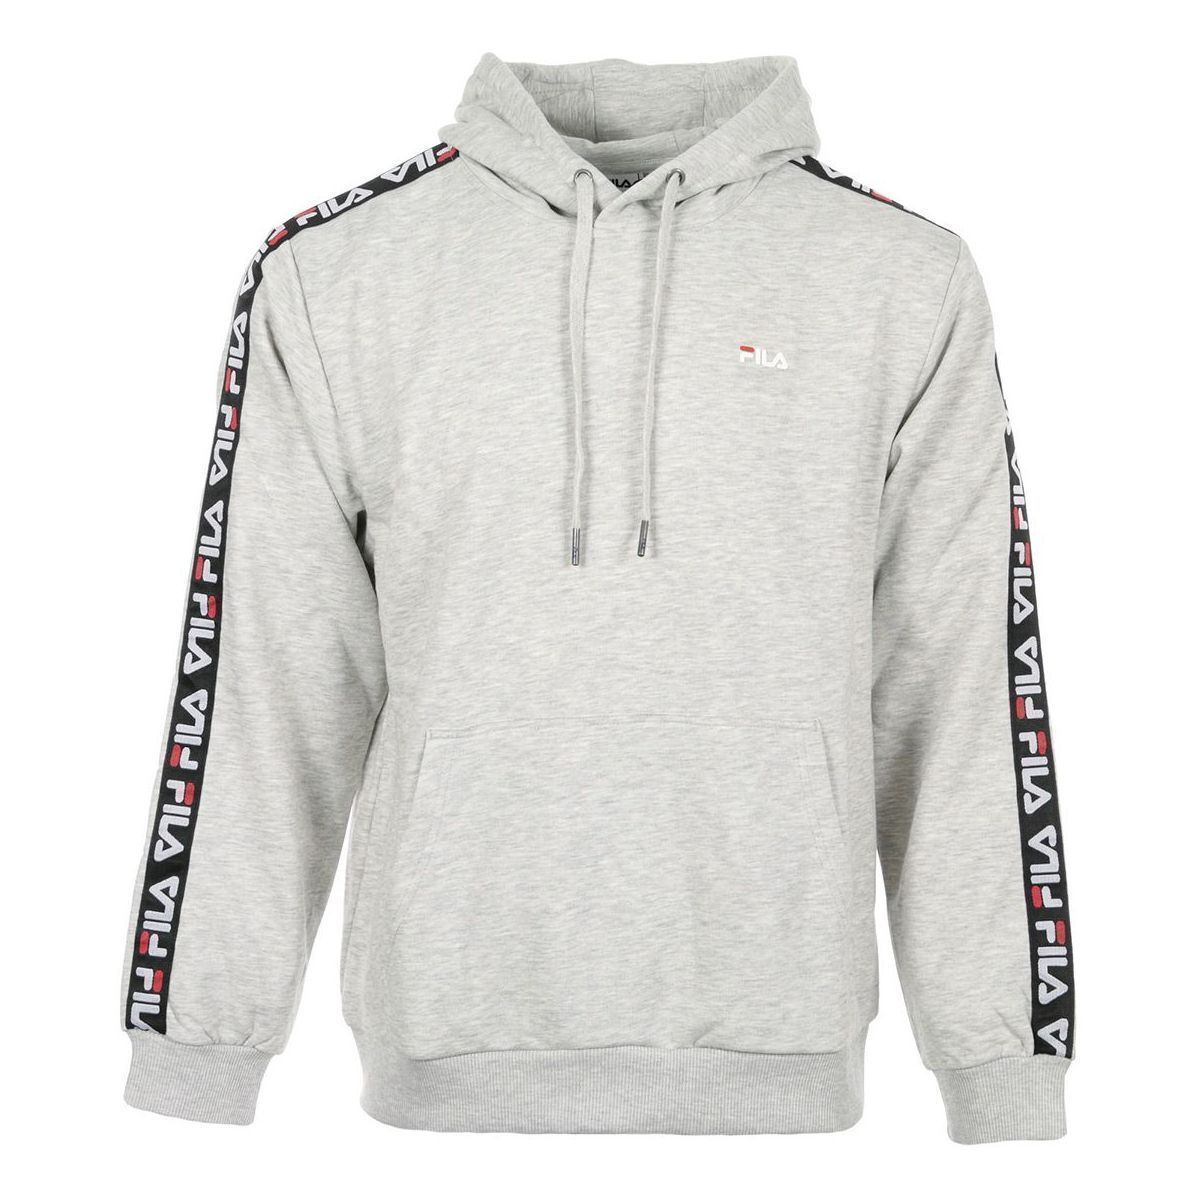 STONE 1 W MEN DAVID TAPED HOODY:GRIS/COTON/COTON//Gris